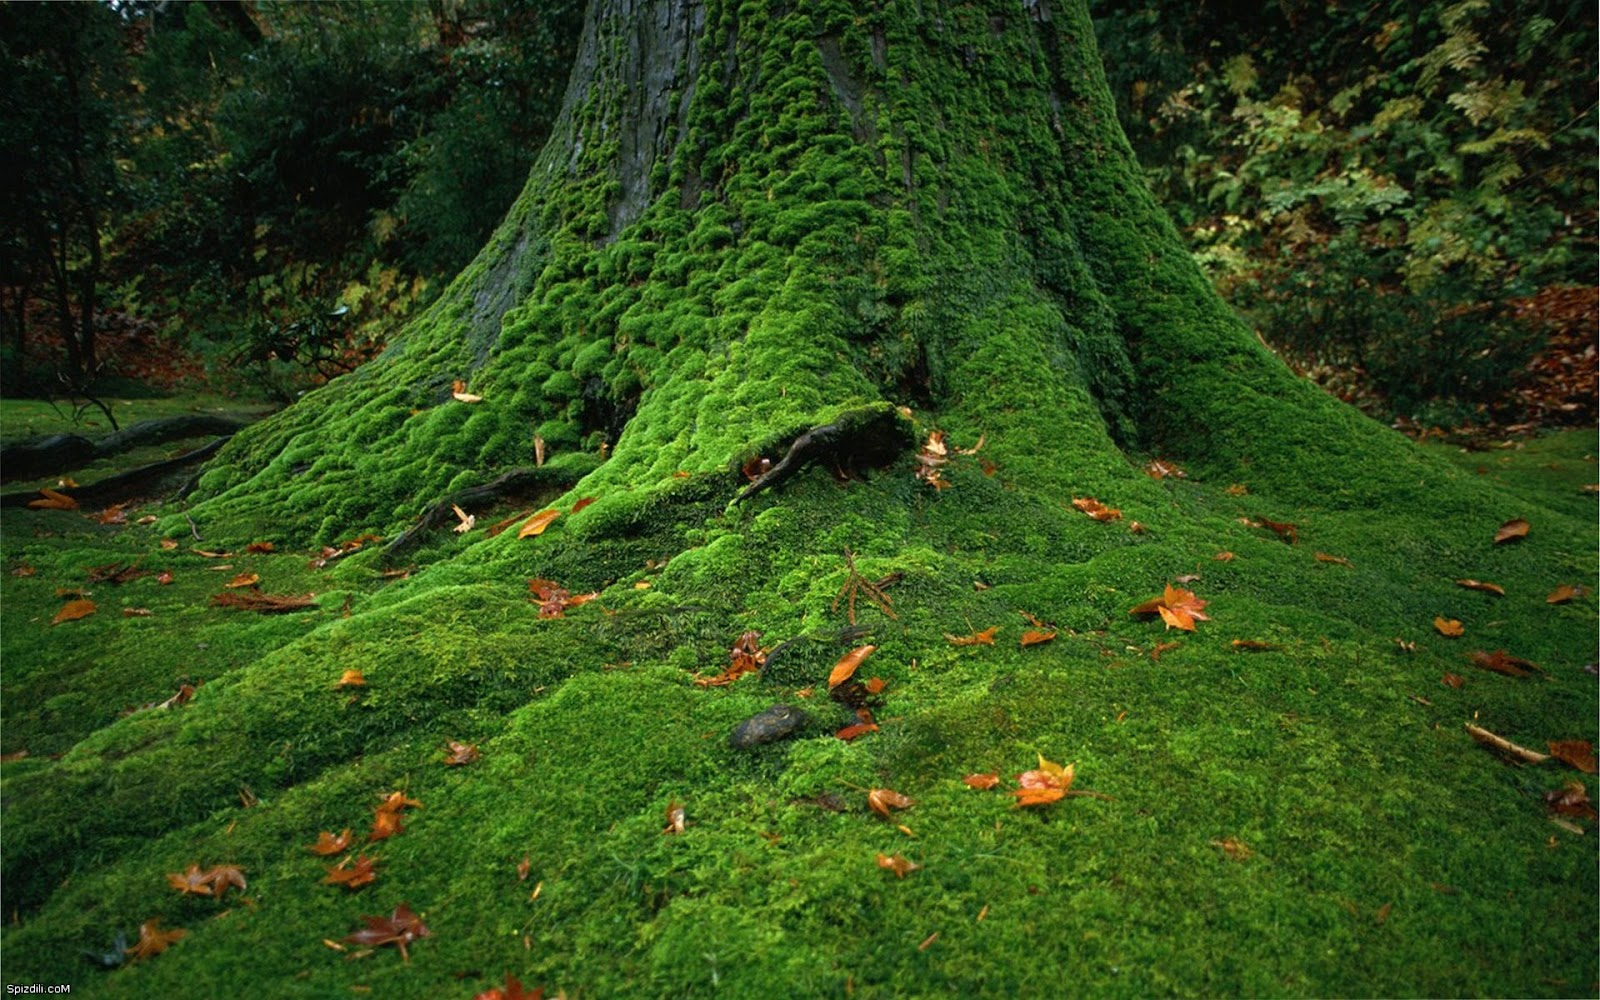 Lawn and landscape tips from the turf doctor don t let moss grow